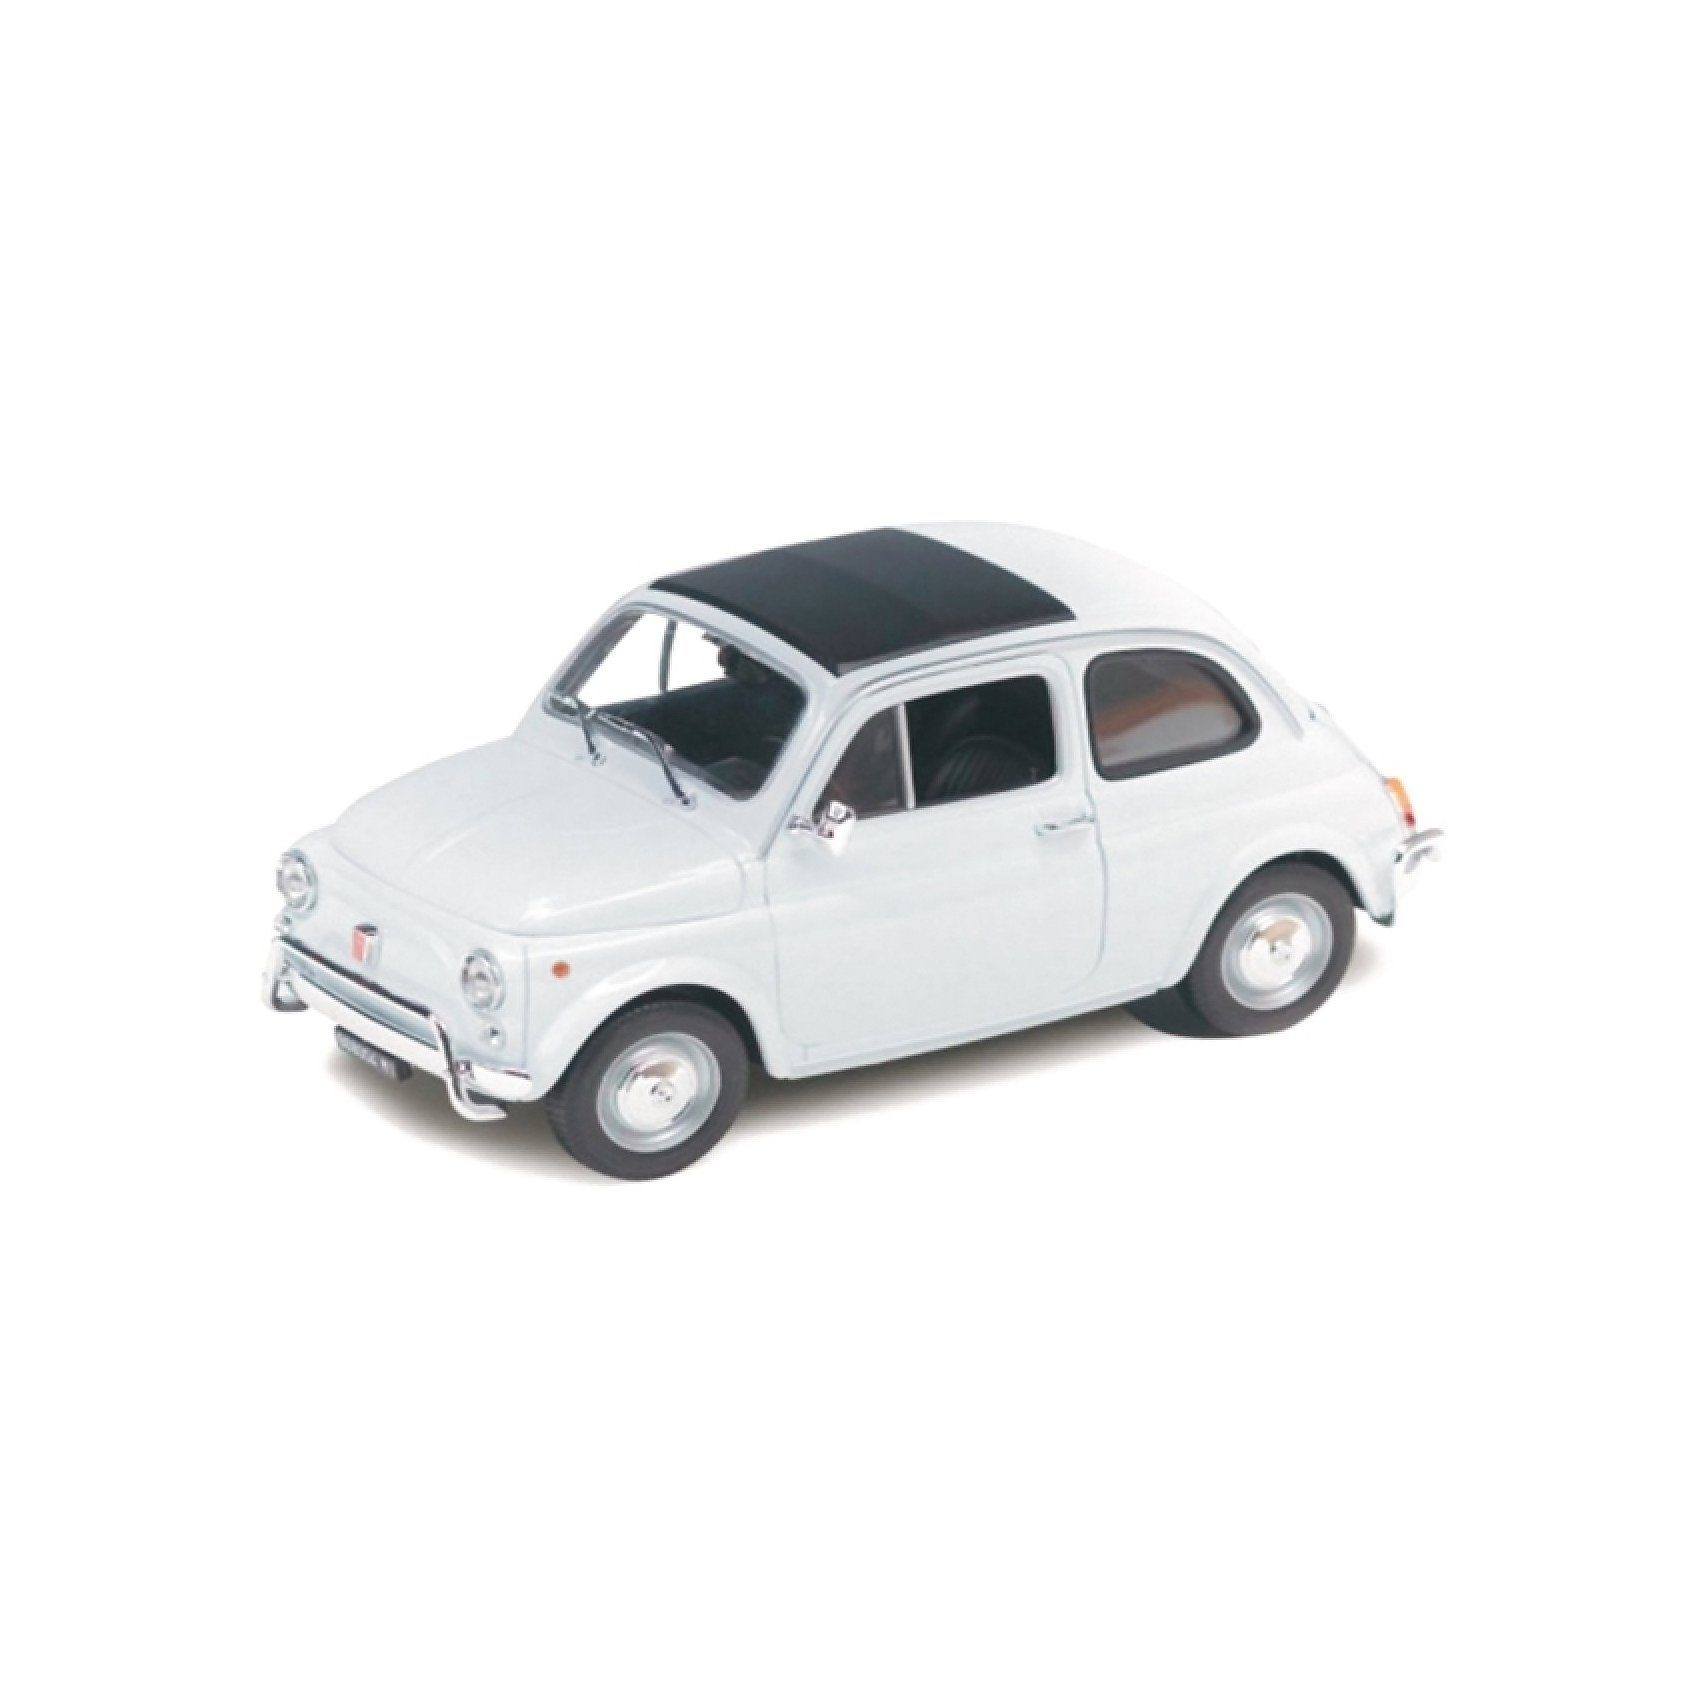 Welly 57er Fiat 500 (1957), weiß 1:18